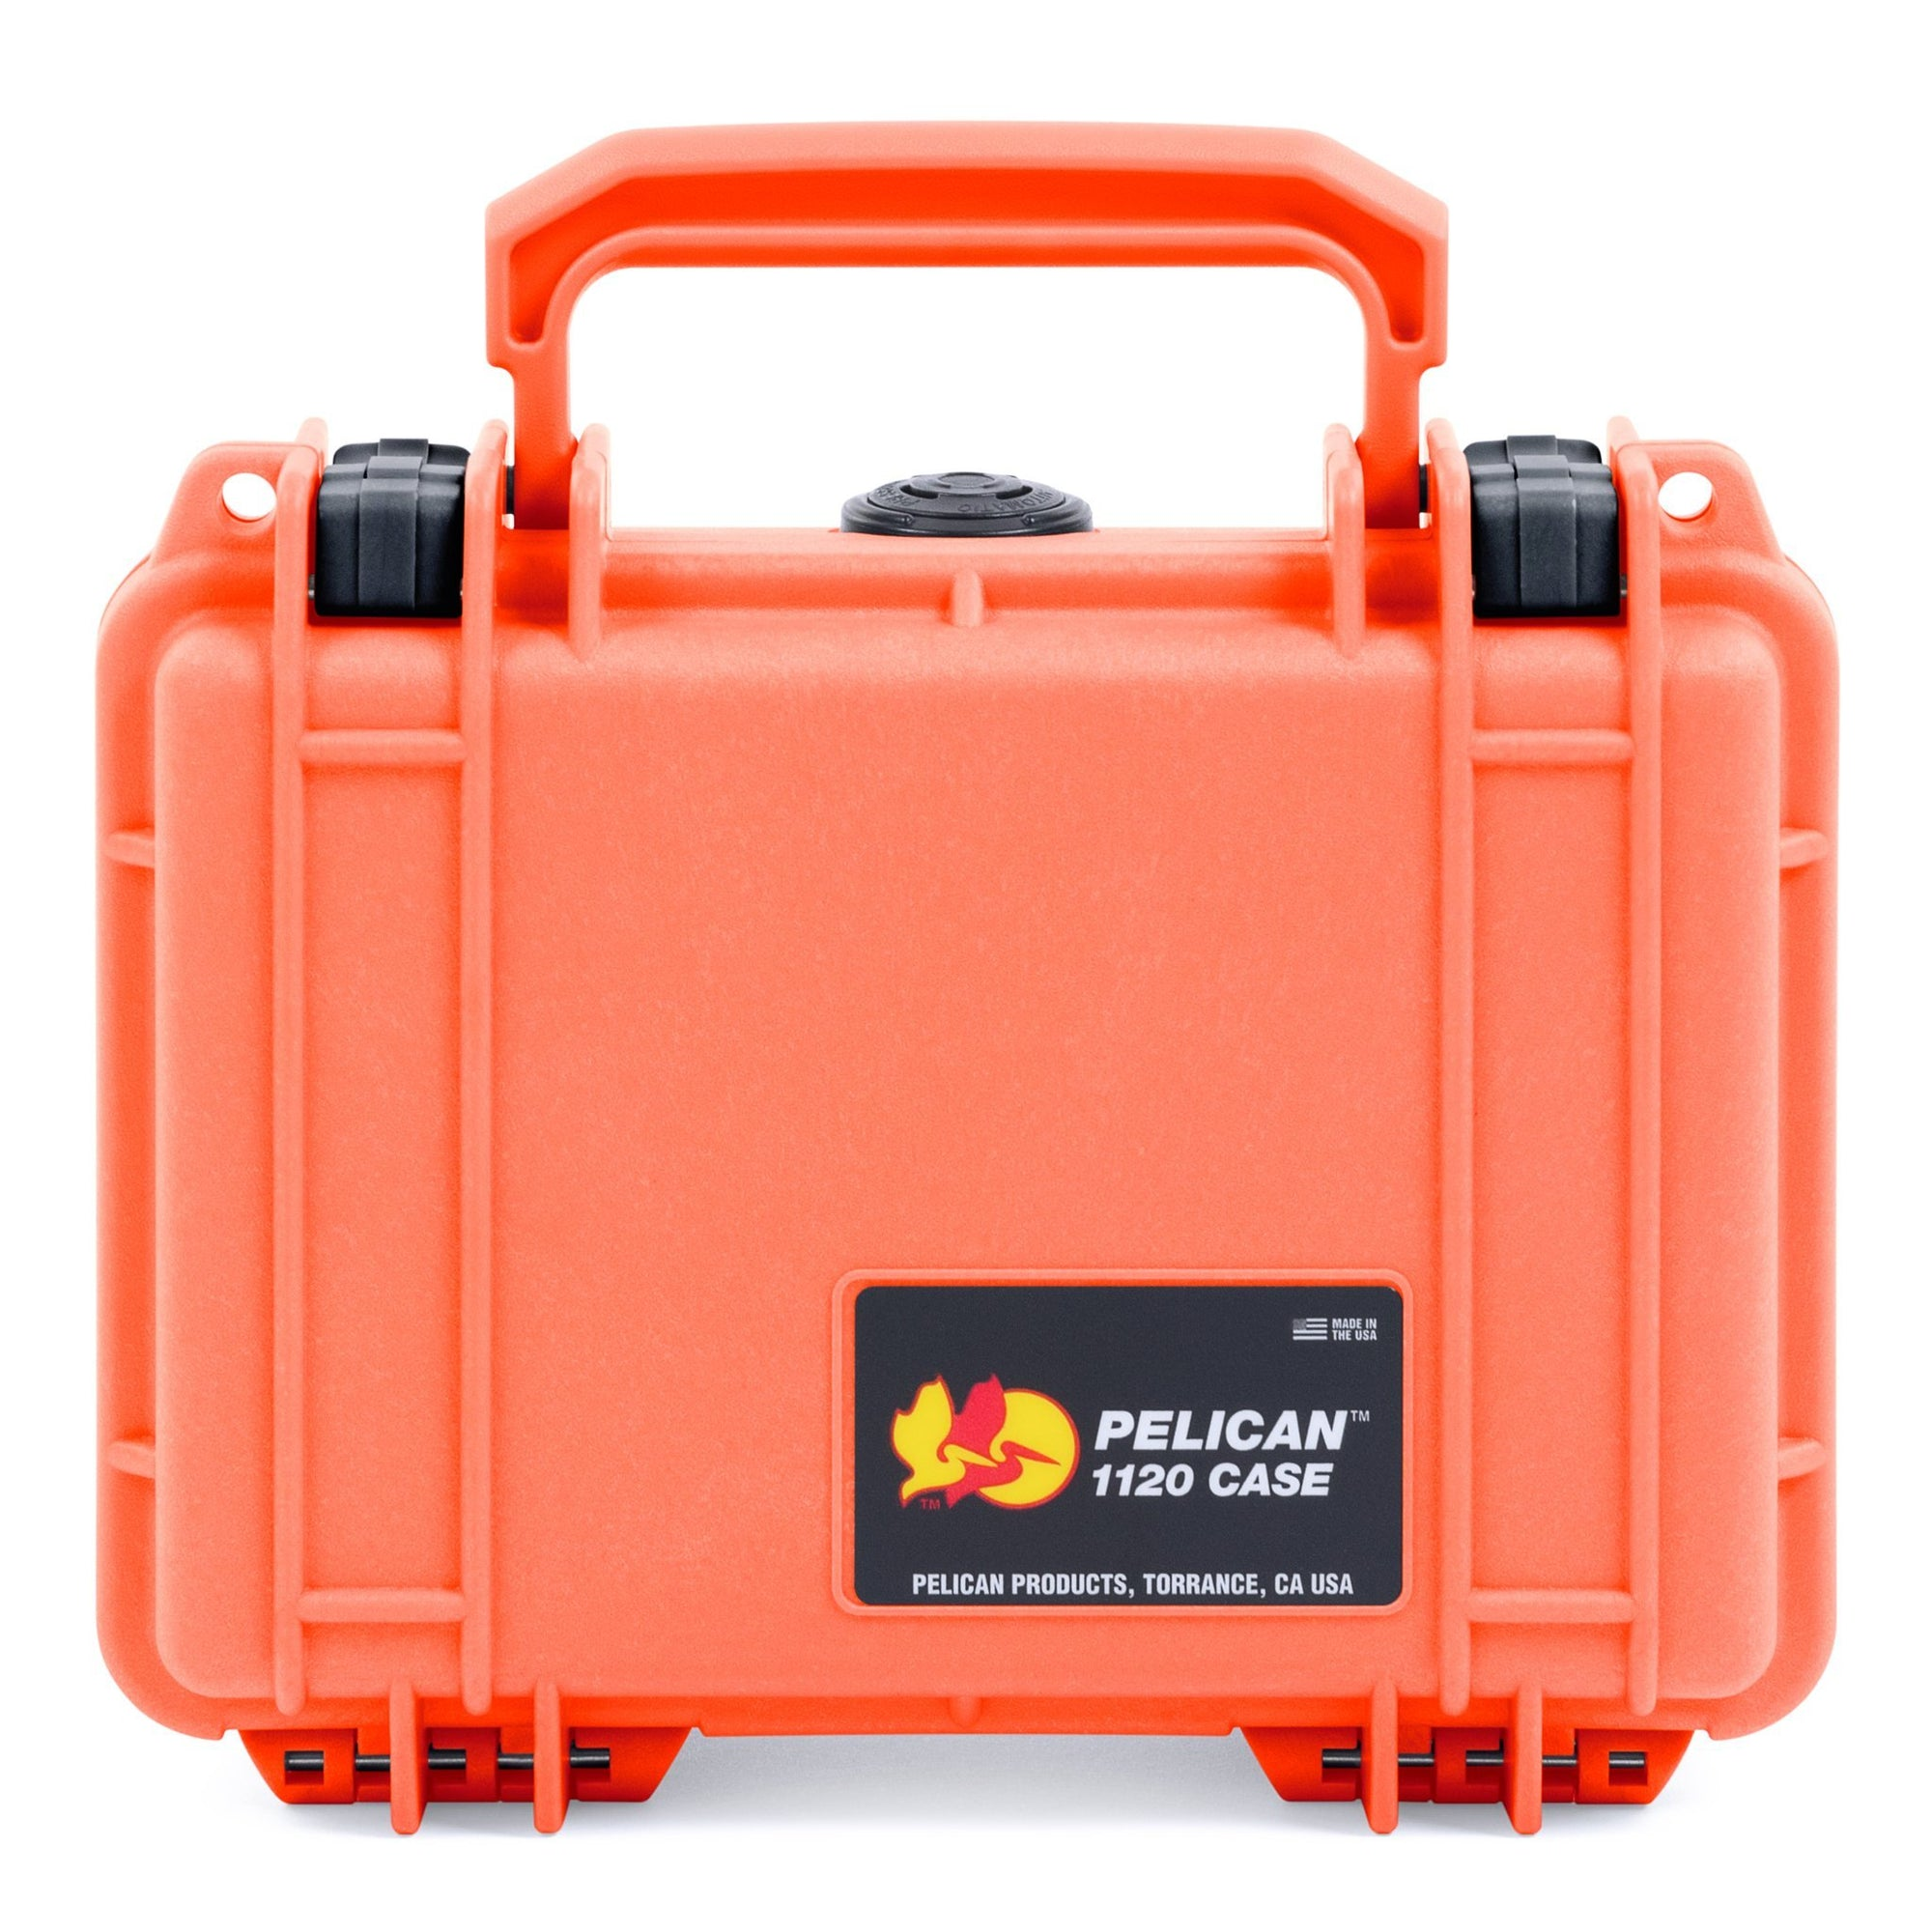 Pelican 1120 Case, Orange with Black Latches - Pelican Color Case